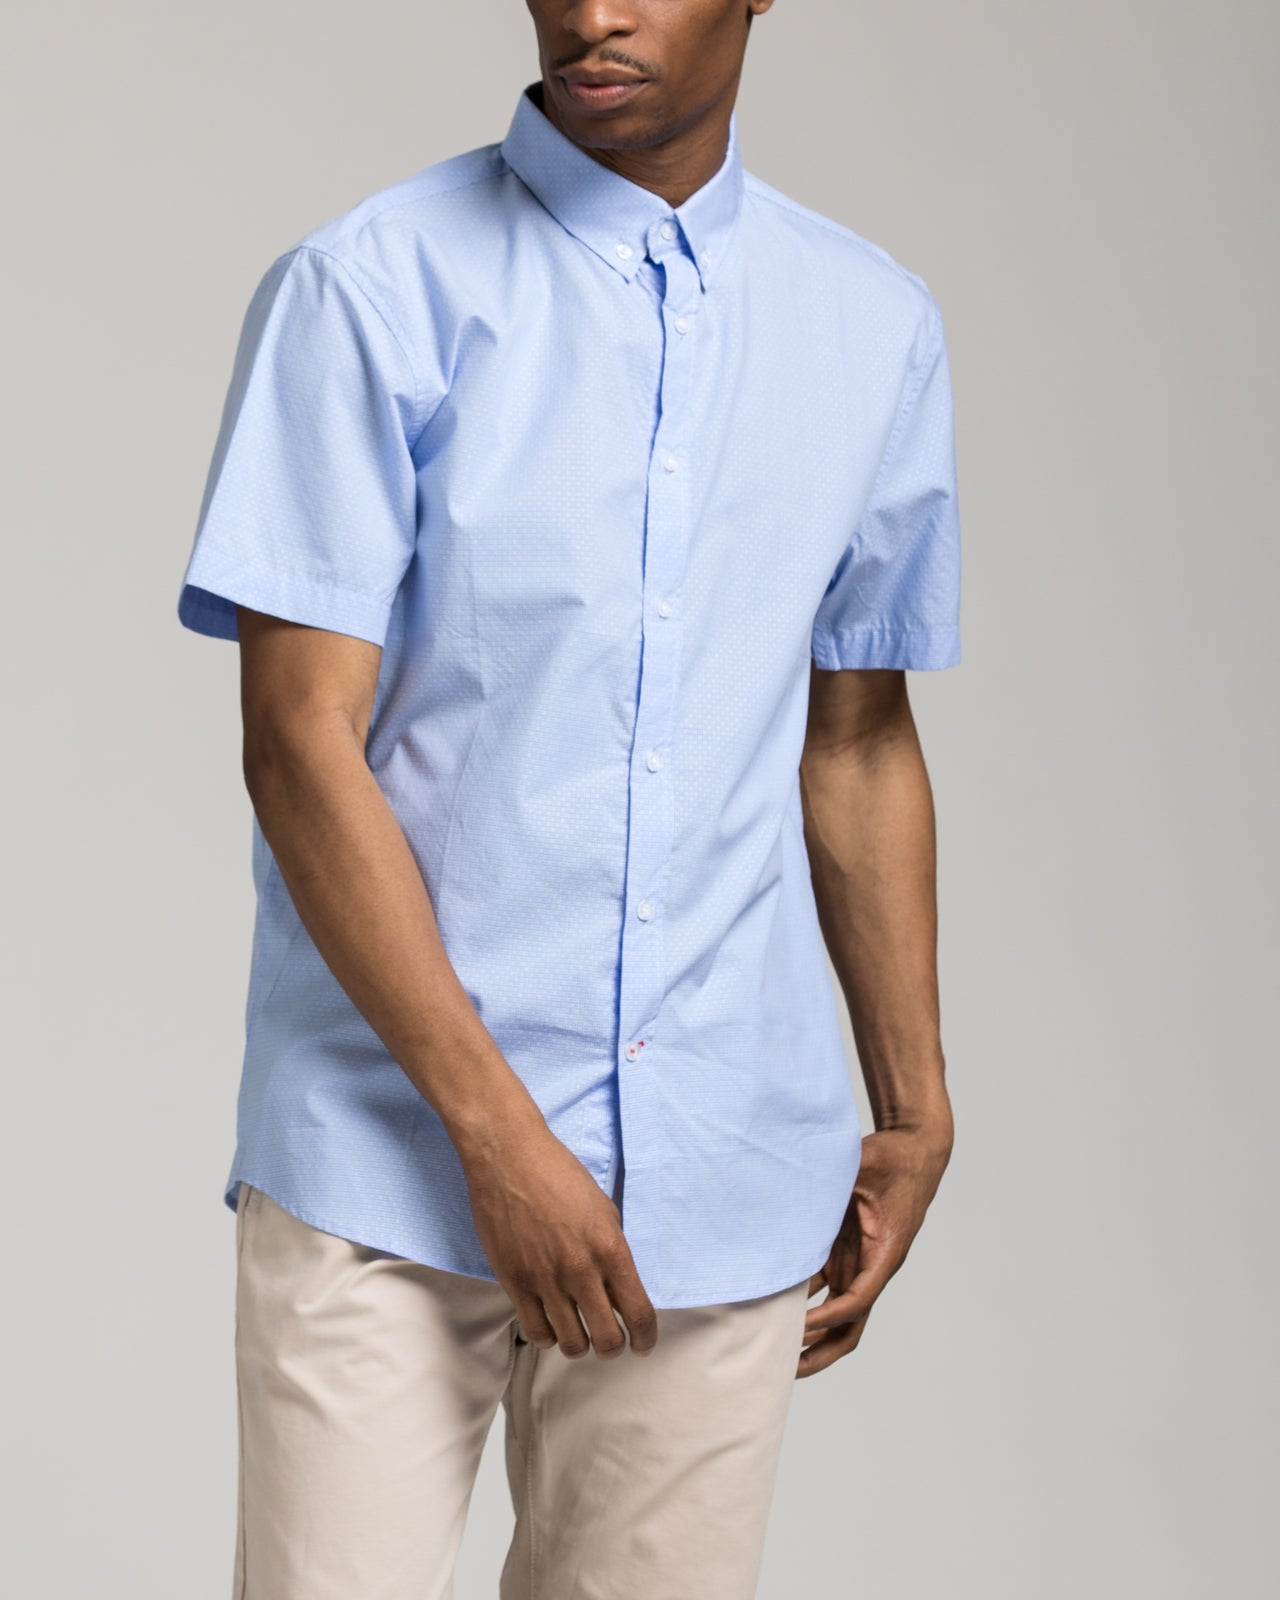 Short Sleeve Dolby Shirt - Color: Blue/White | Blue